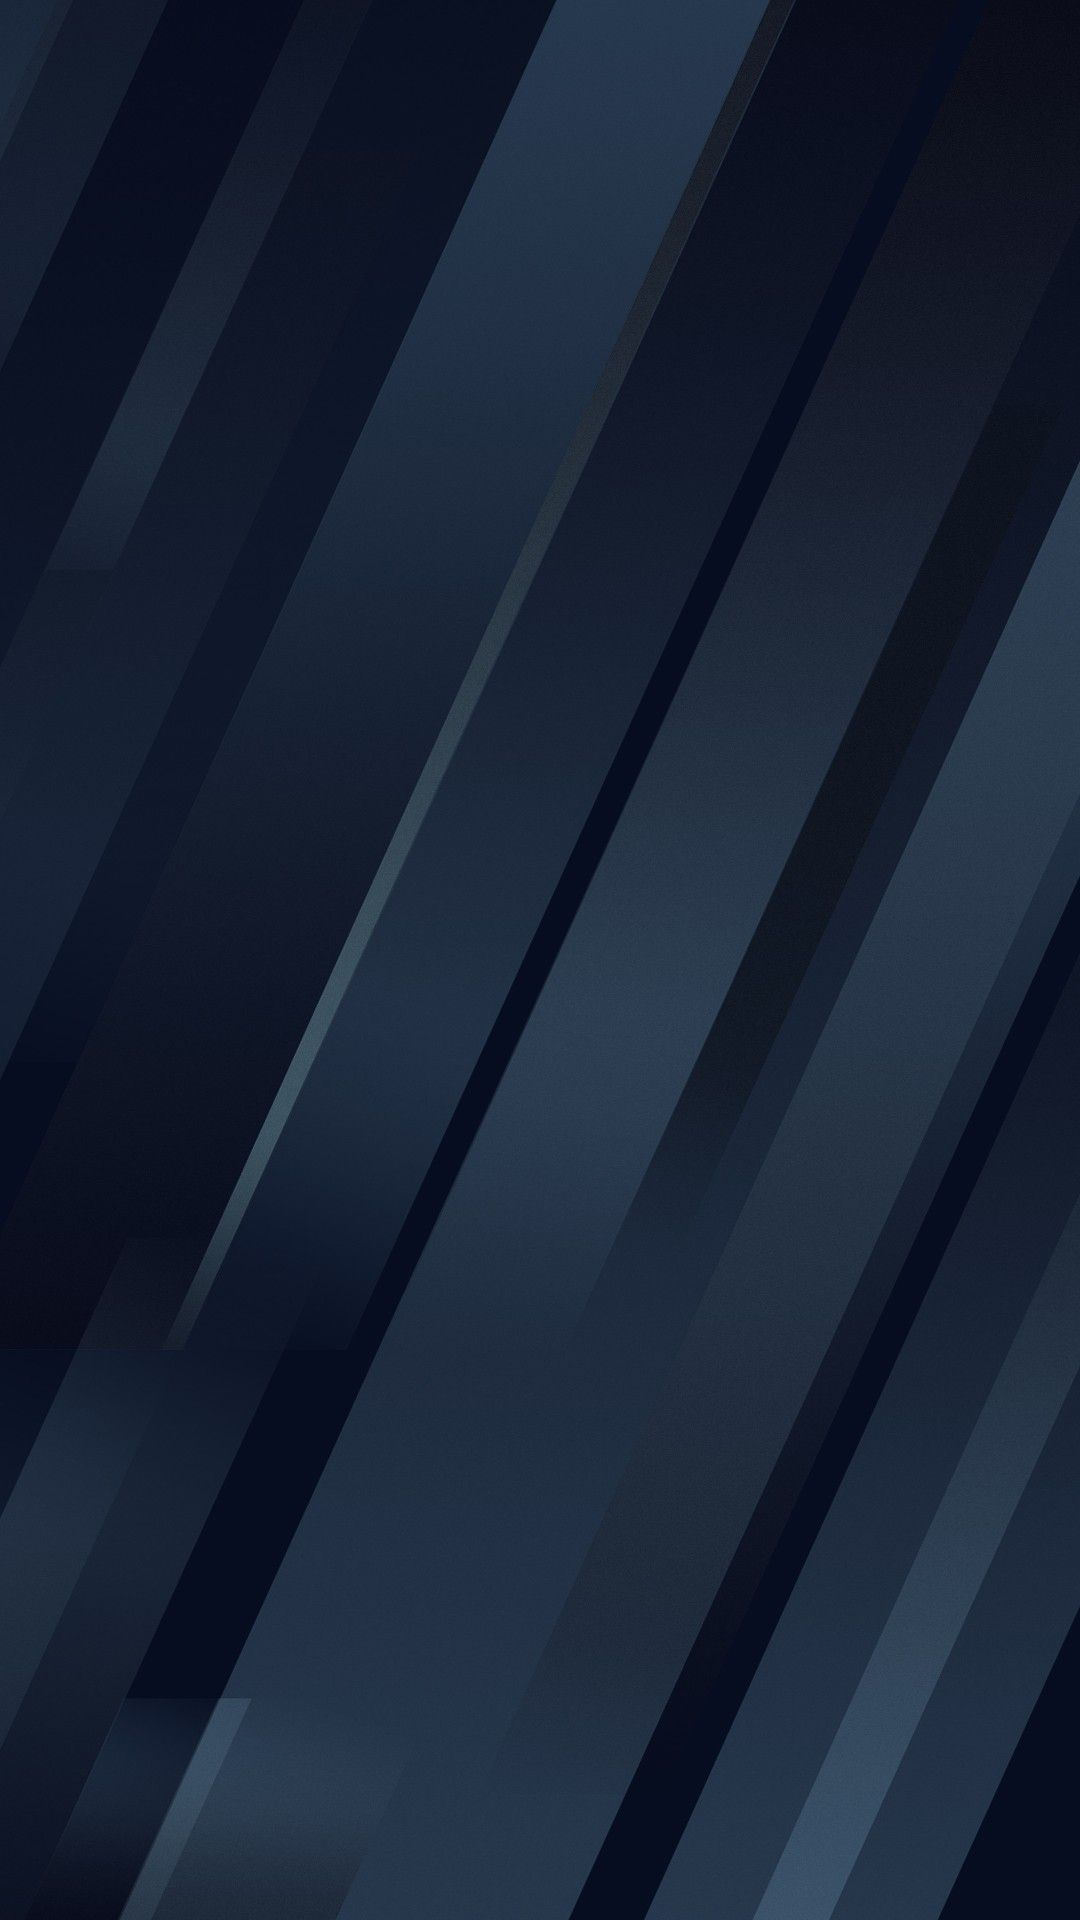 Navy Blue Wallpaper With images Geometric wallpaper iphone 1080x1920